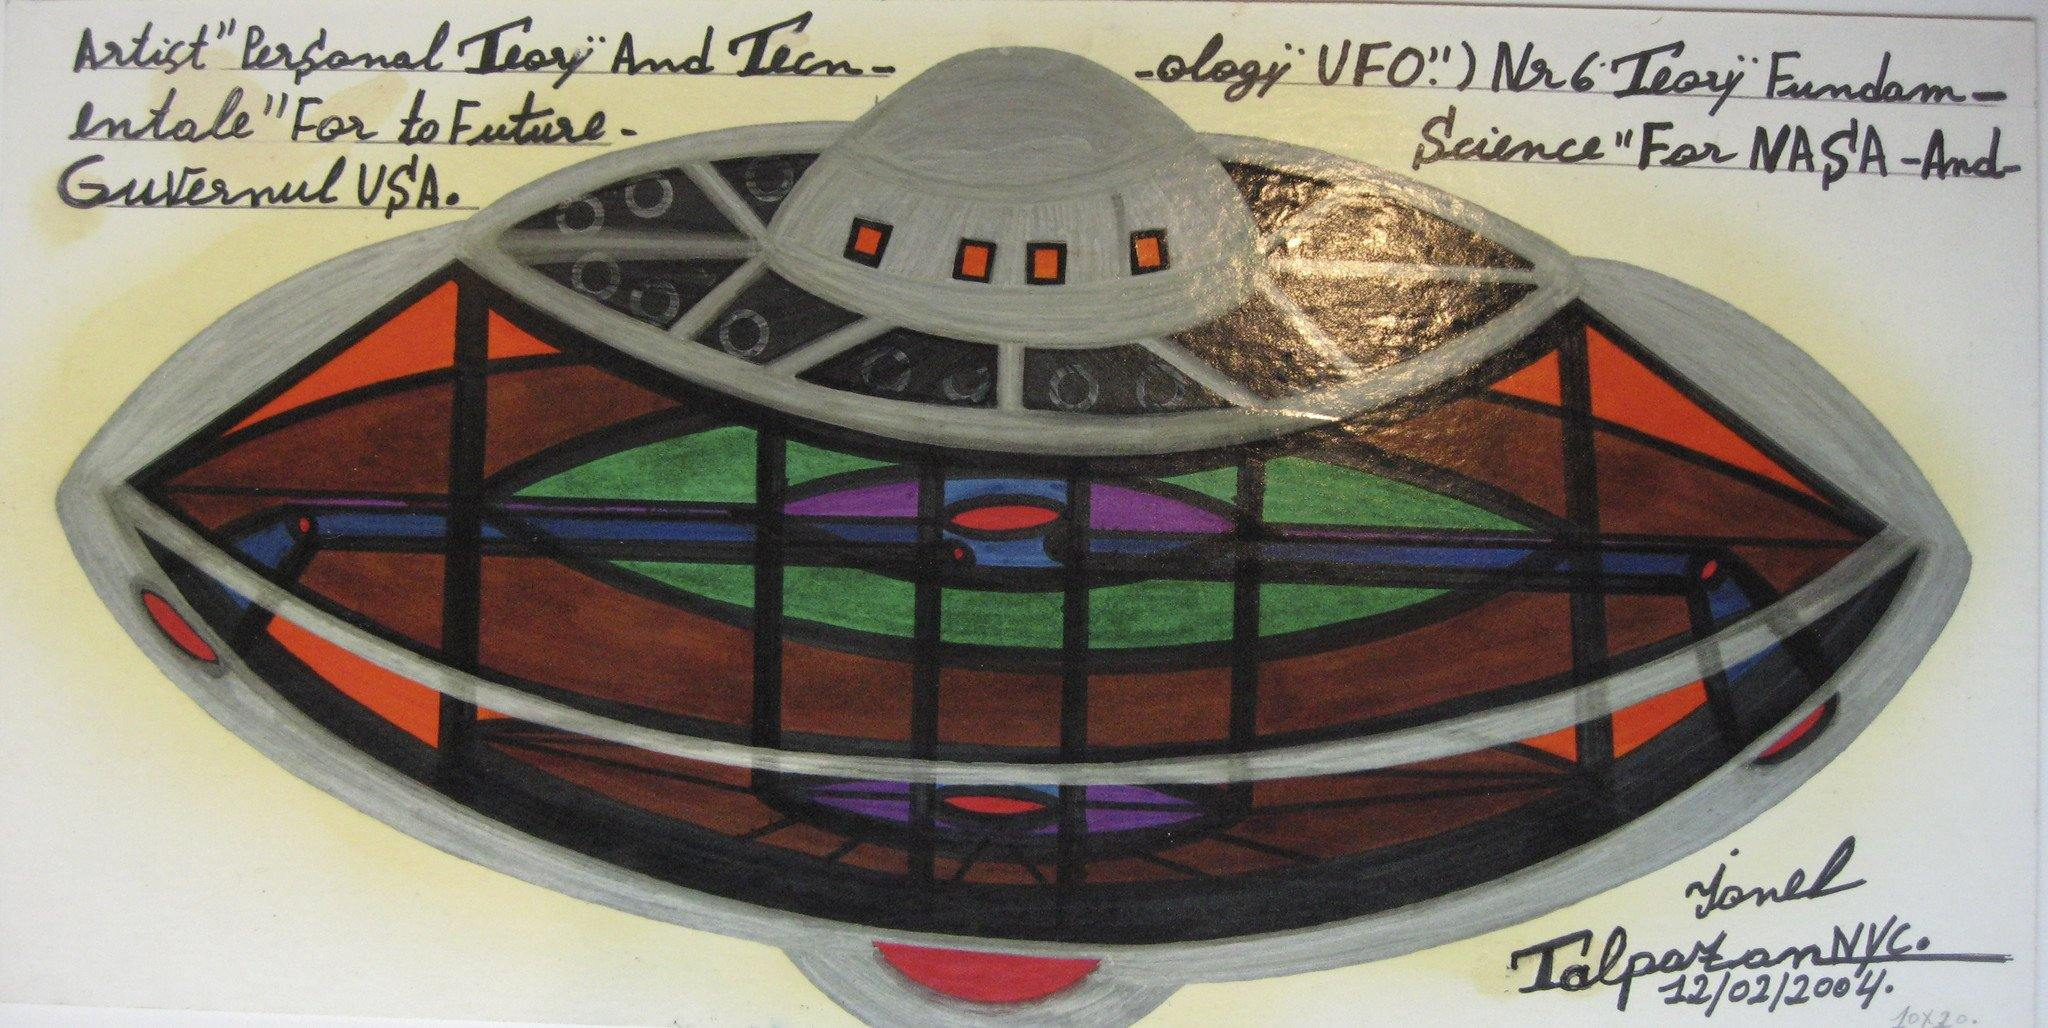 UFO Silver dome & Green/red control room